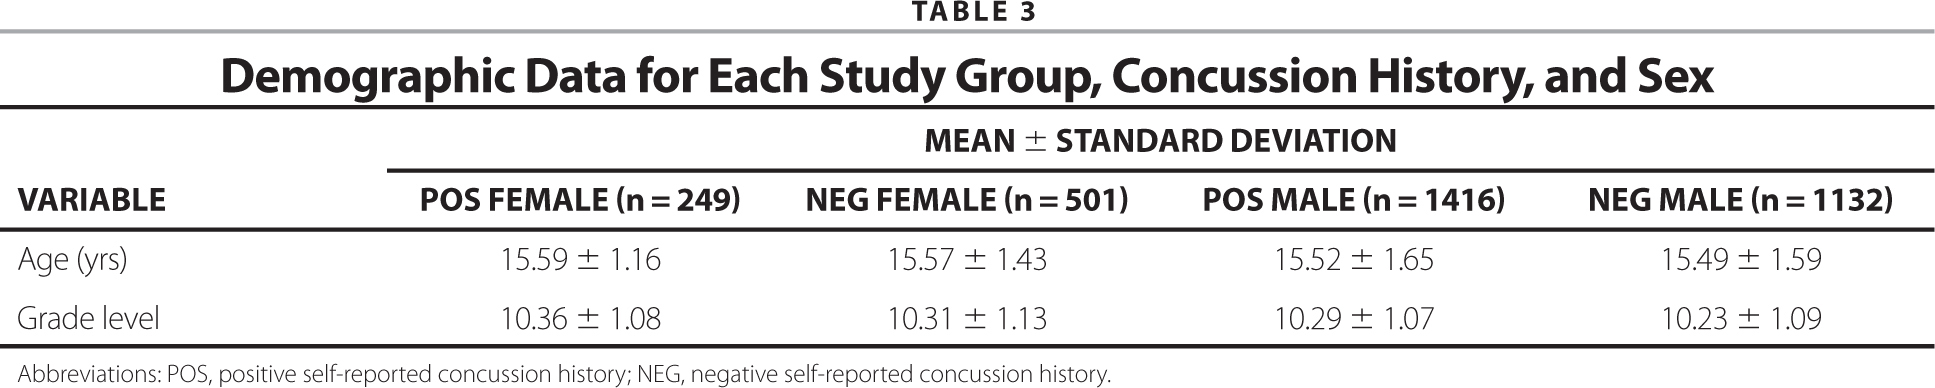 Demographic Data for Each Study Group, Concussion History, and Sex